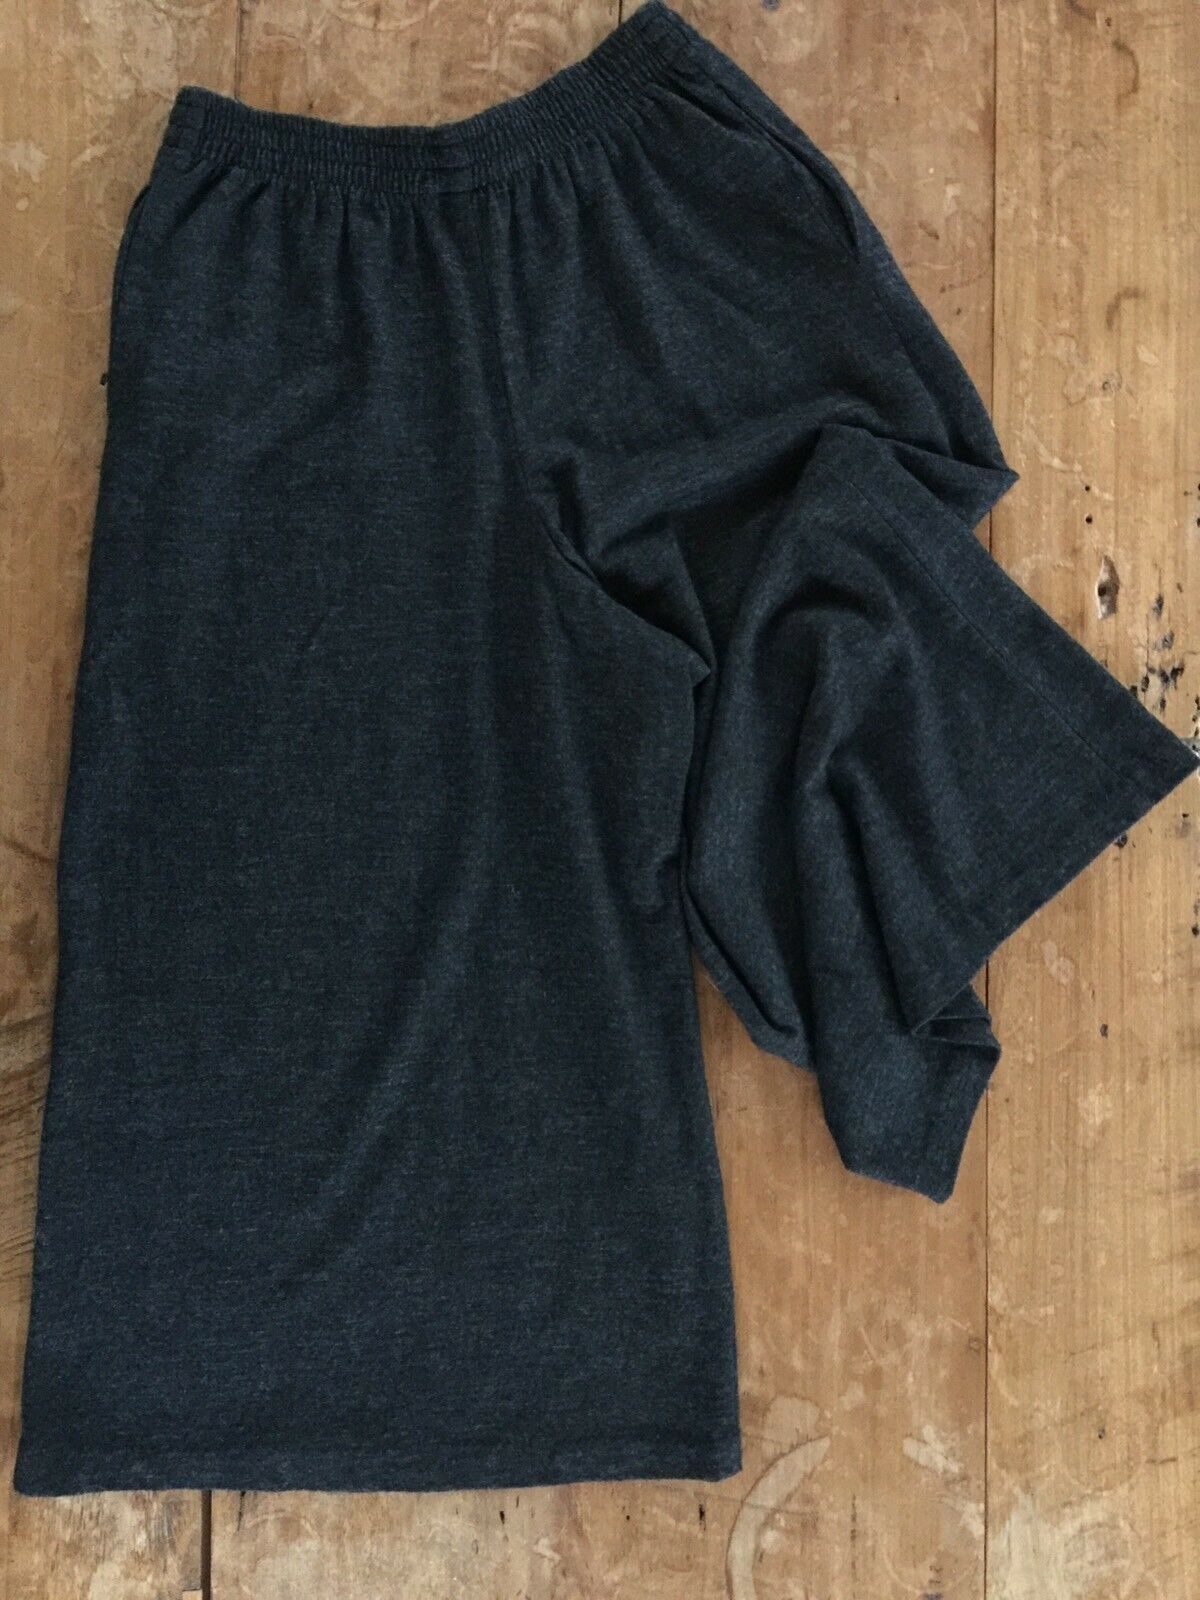 Clifford & Wills wool jersey high rise wide cropped palazzo pants M L 8 10 12 EX